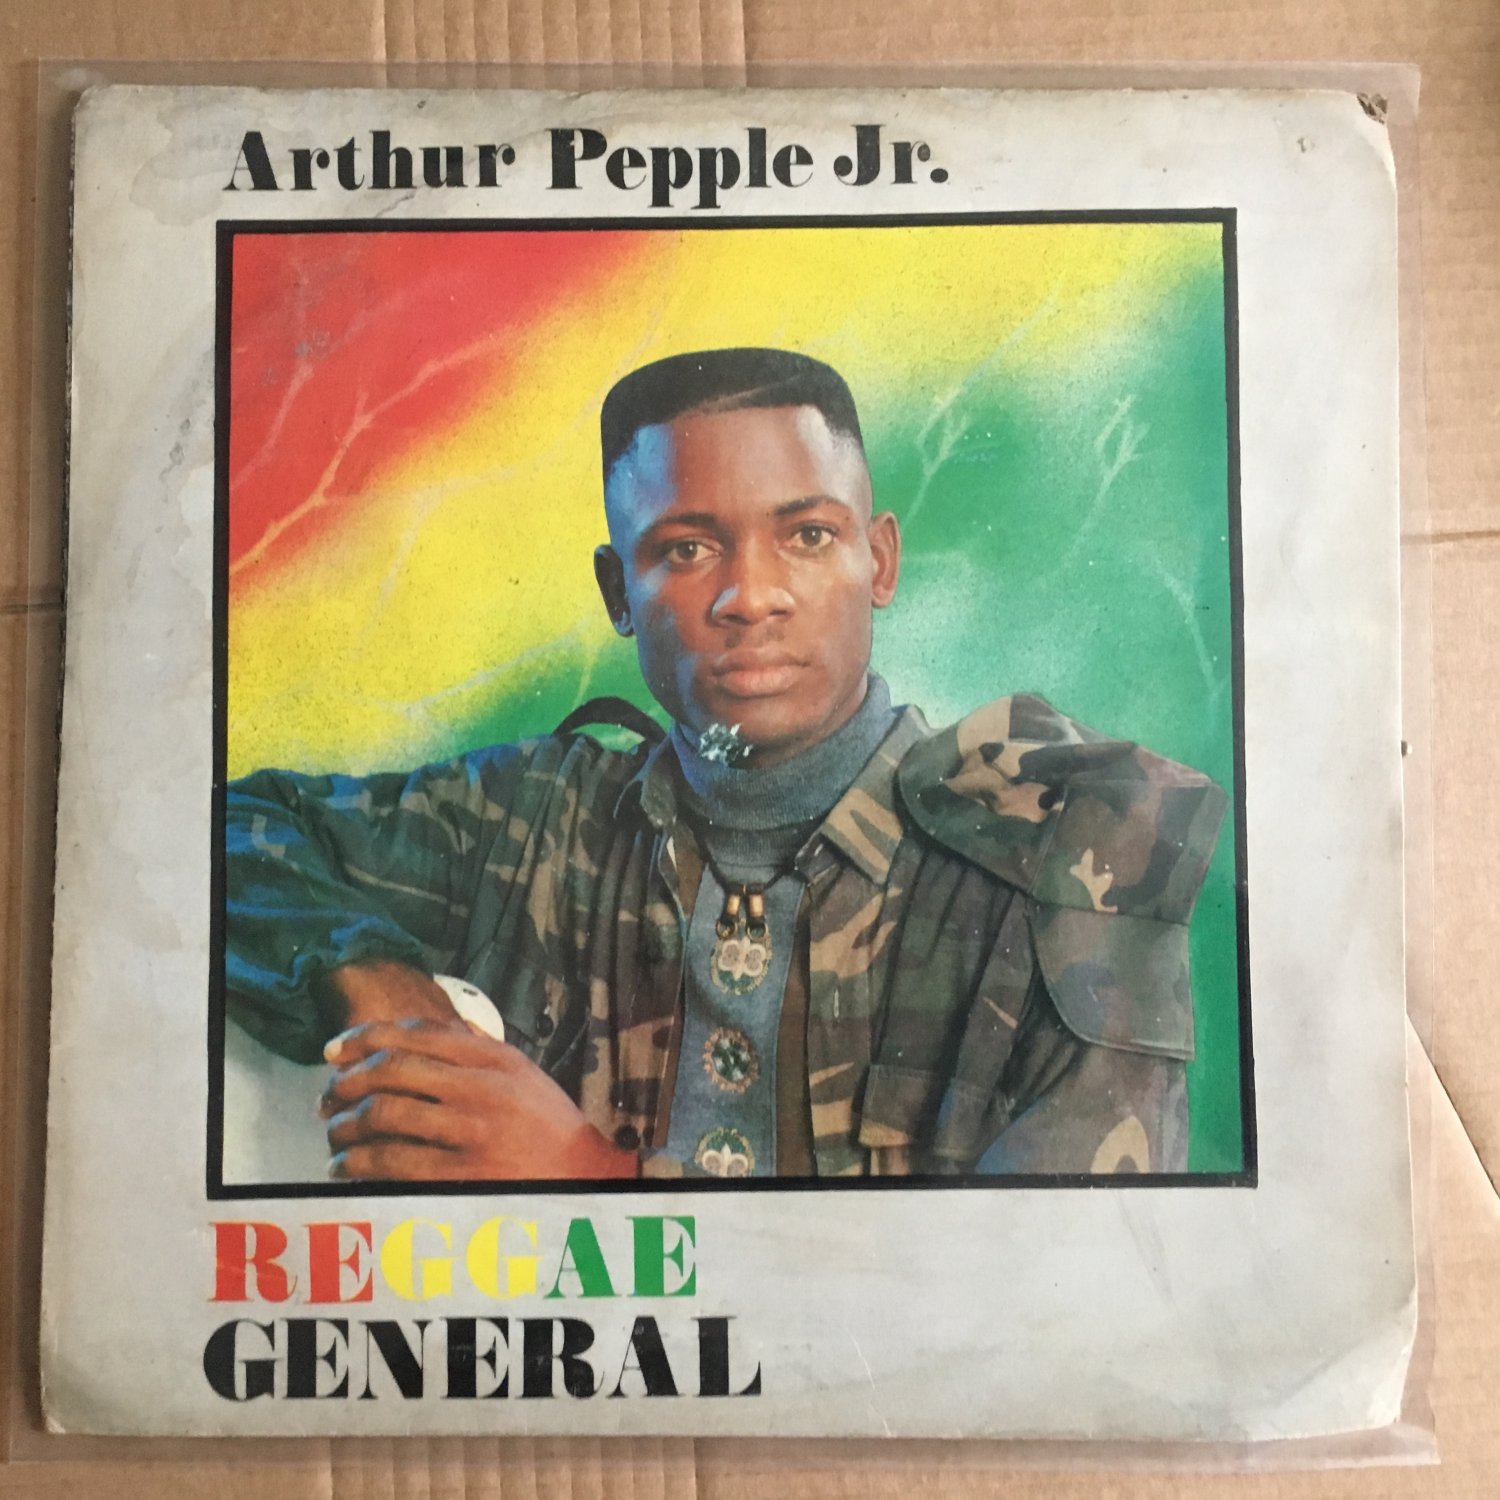 ARTHUR PEEPLE Jr LP reggae general NIGERIA REGGAE mp3 LISTEN